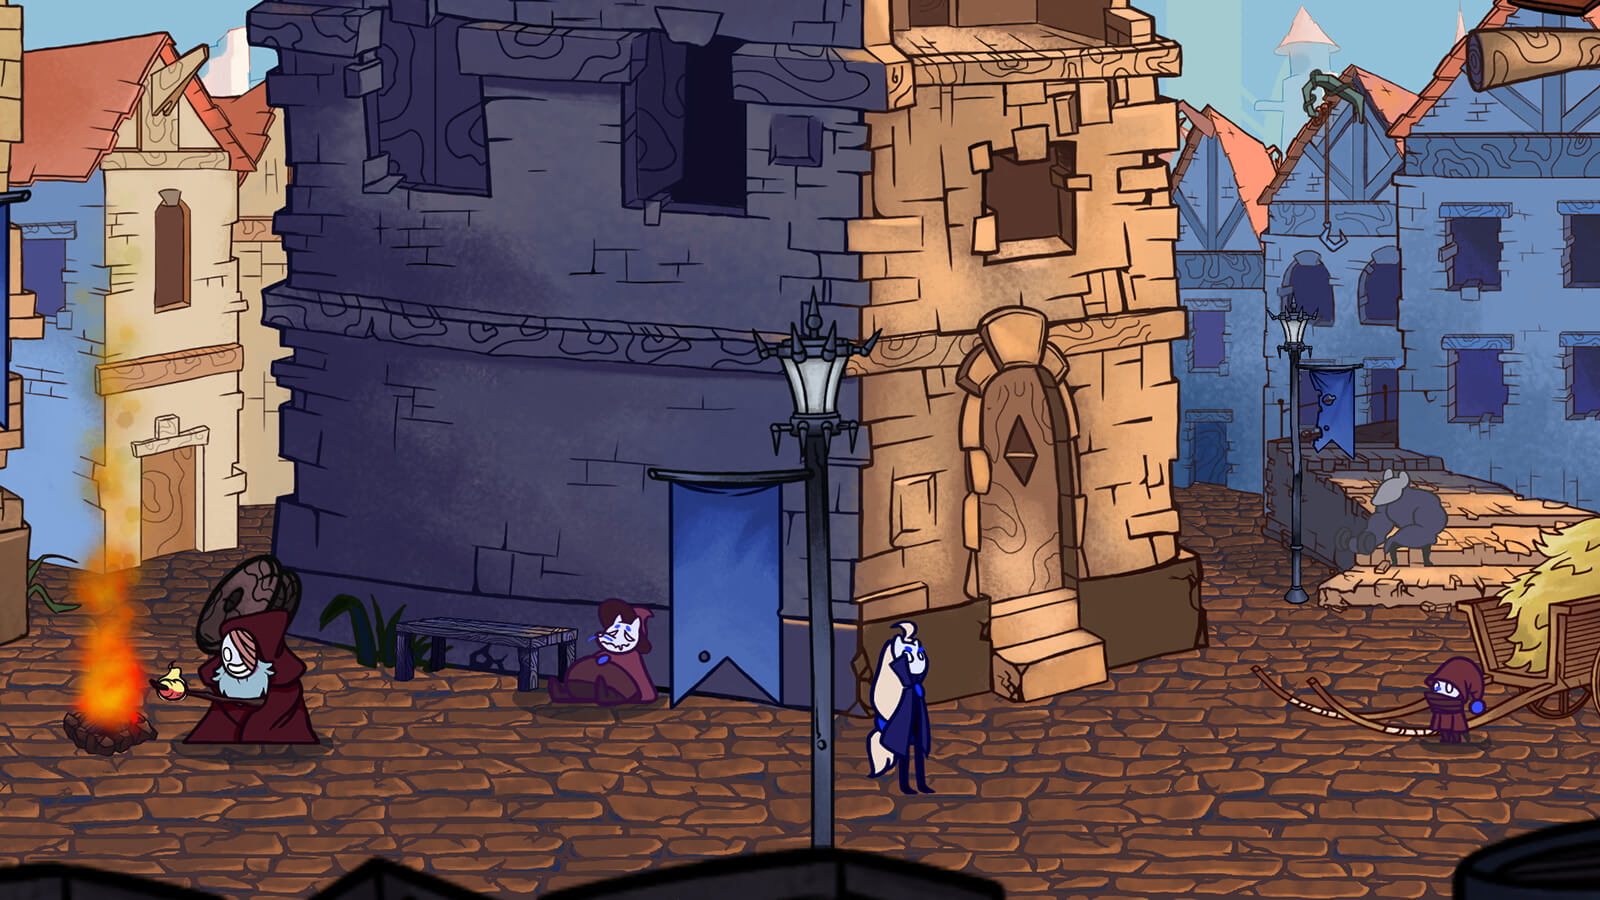 A village scene featuring a character at a campfire, another sleeping against a building, and a giant rat